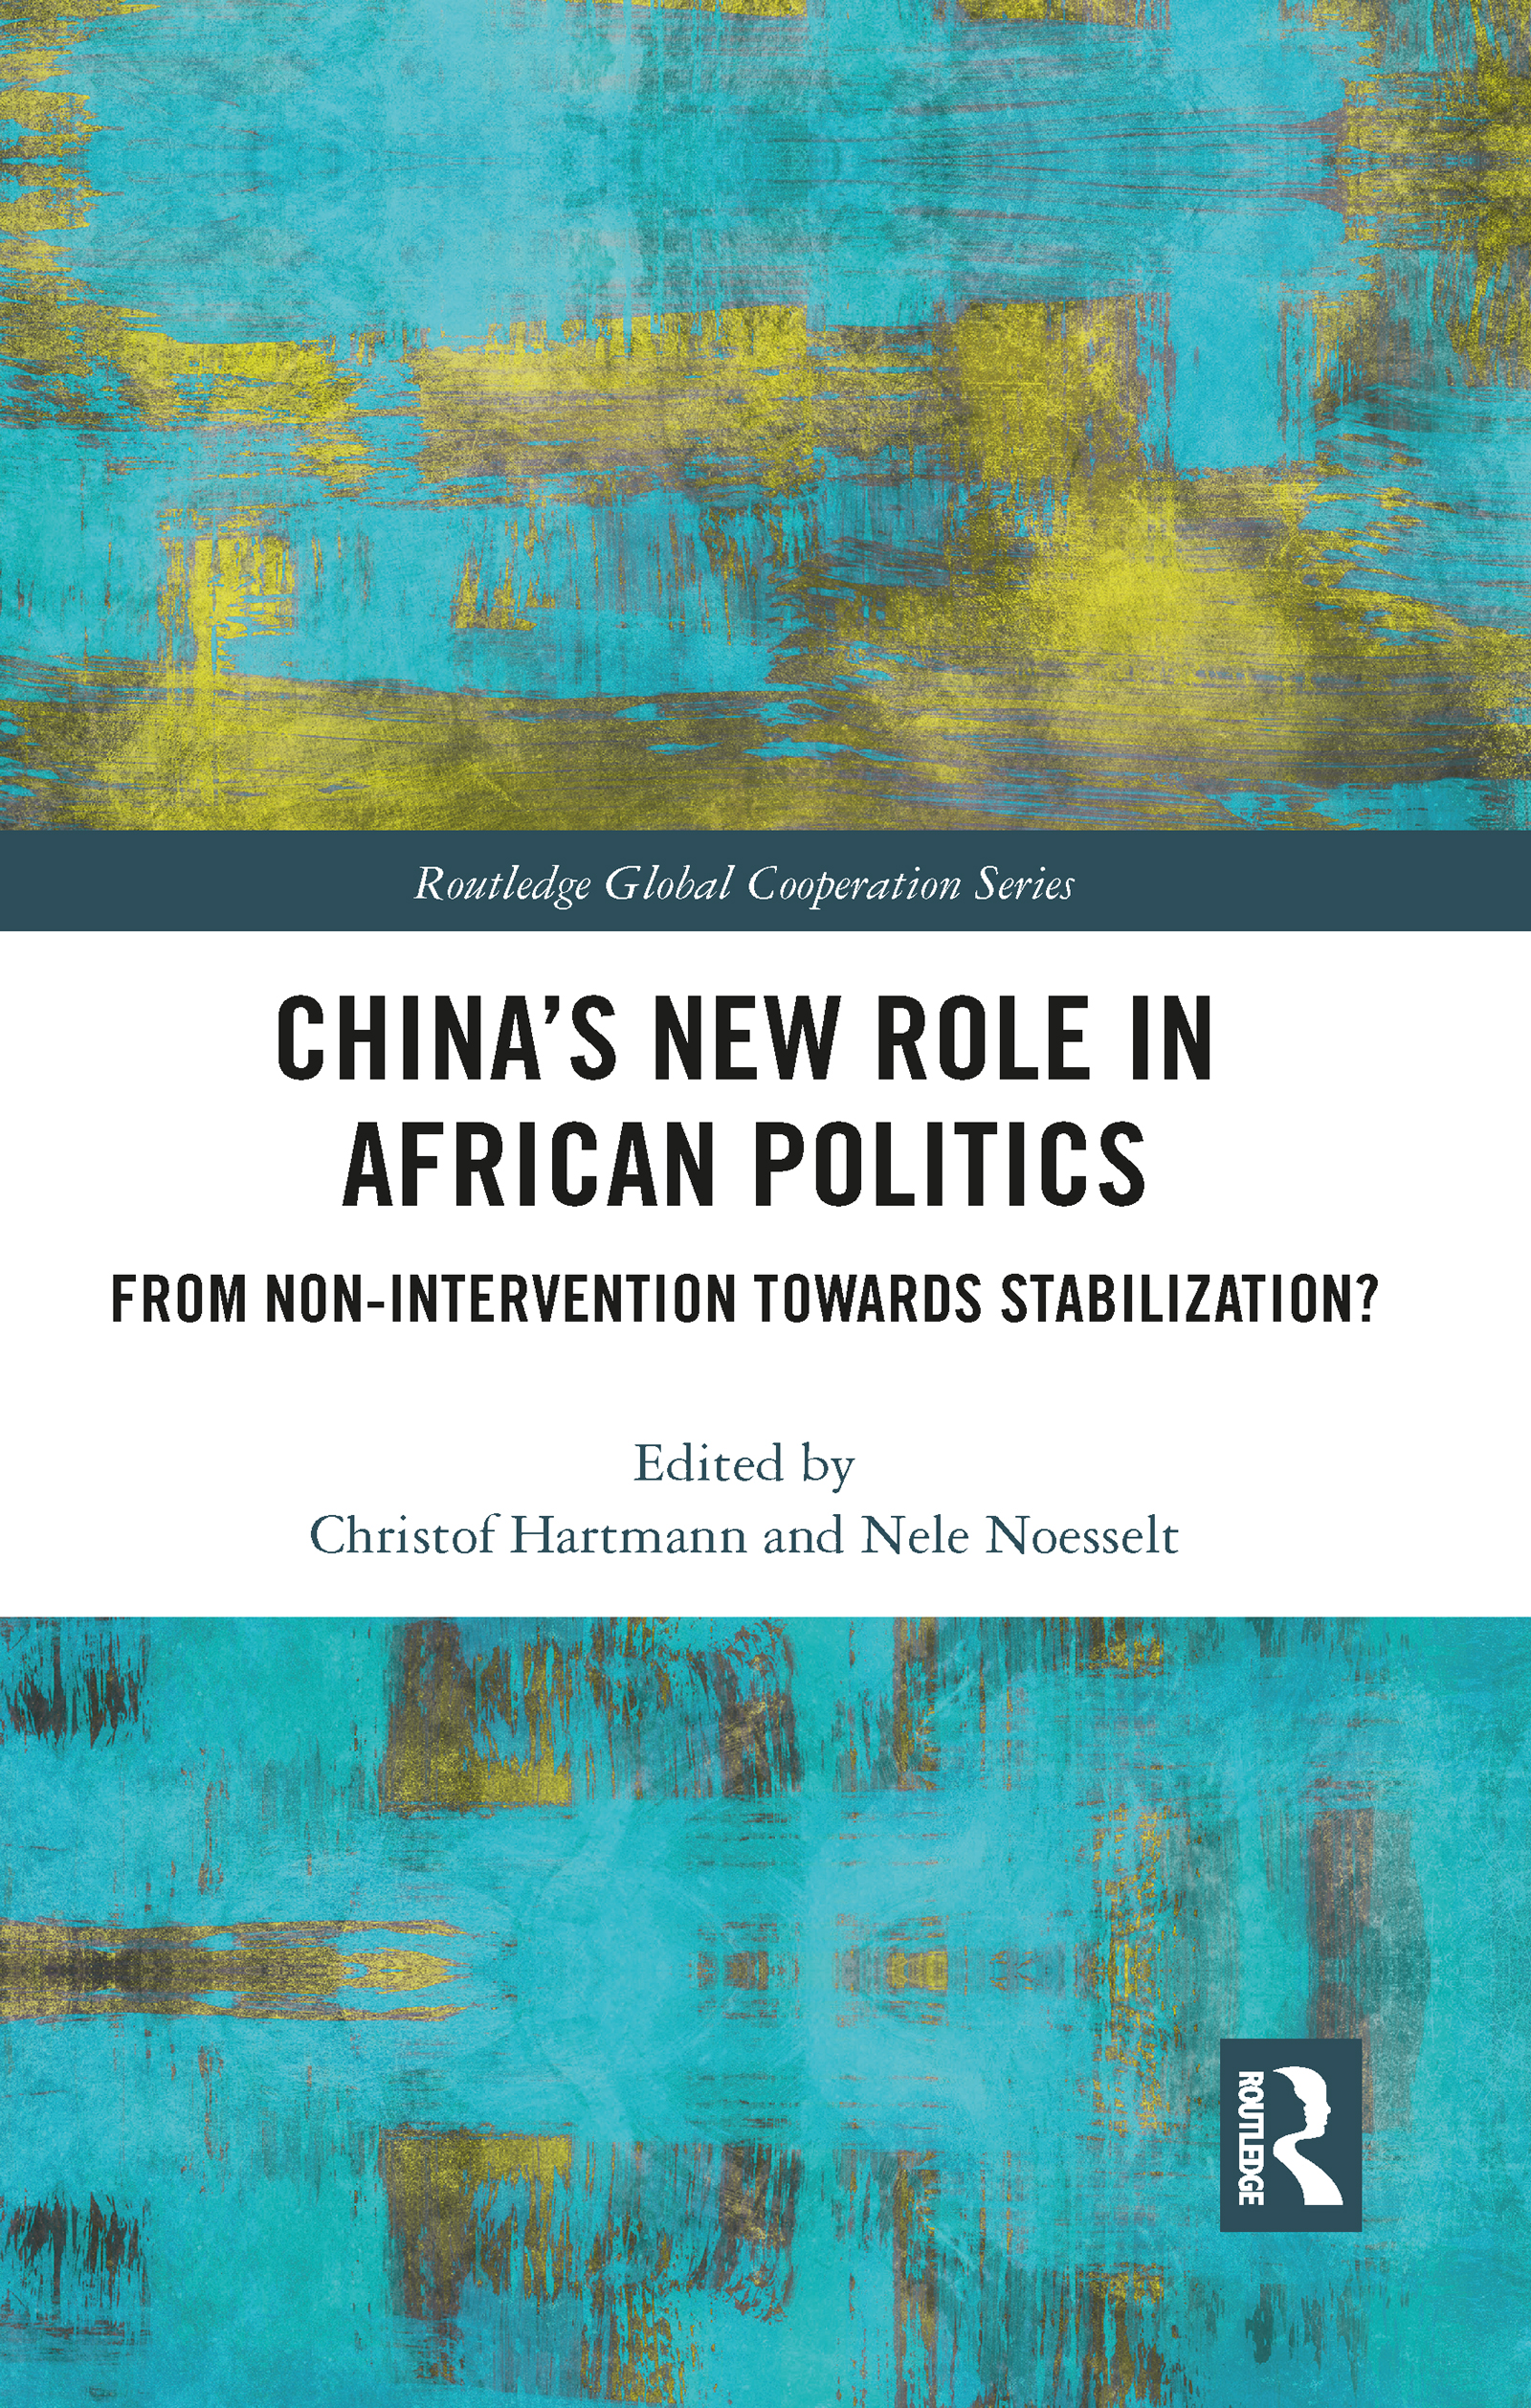 China's New Role in African Politics